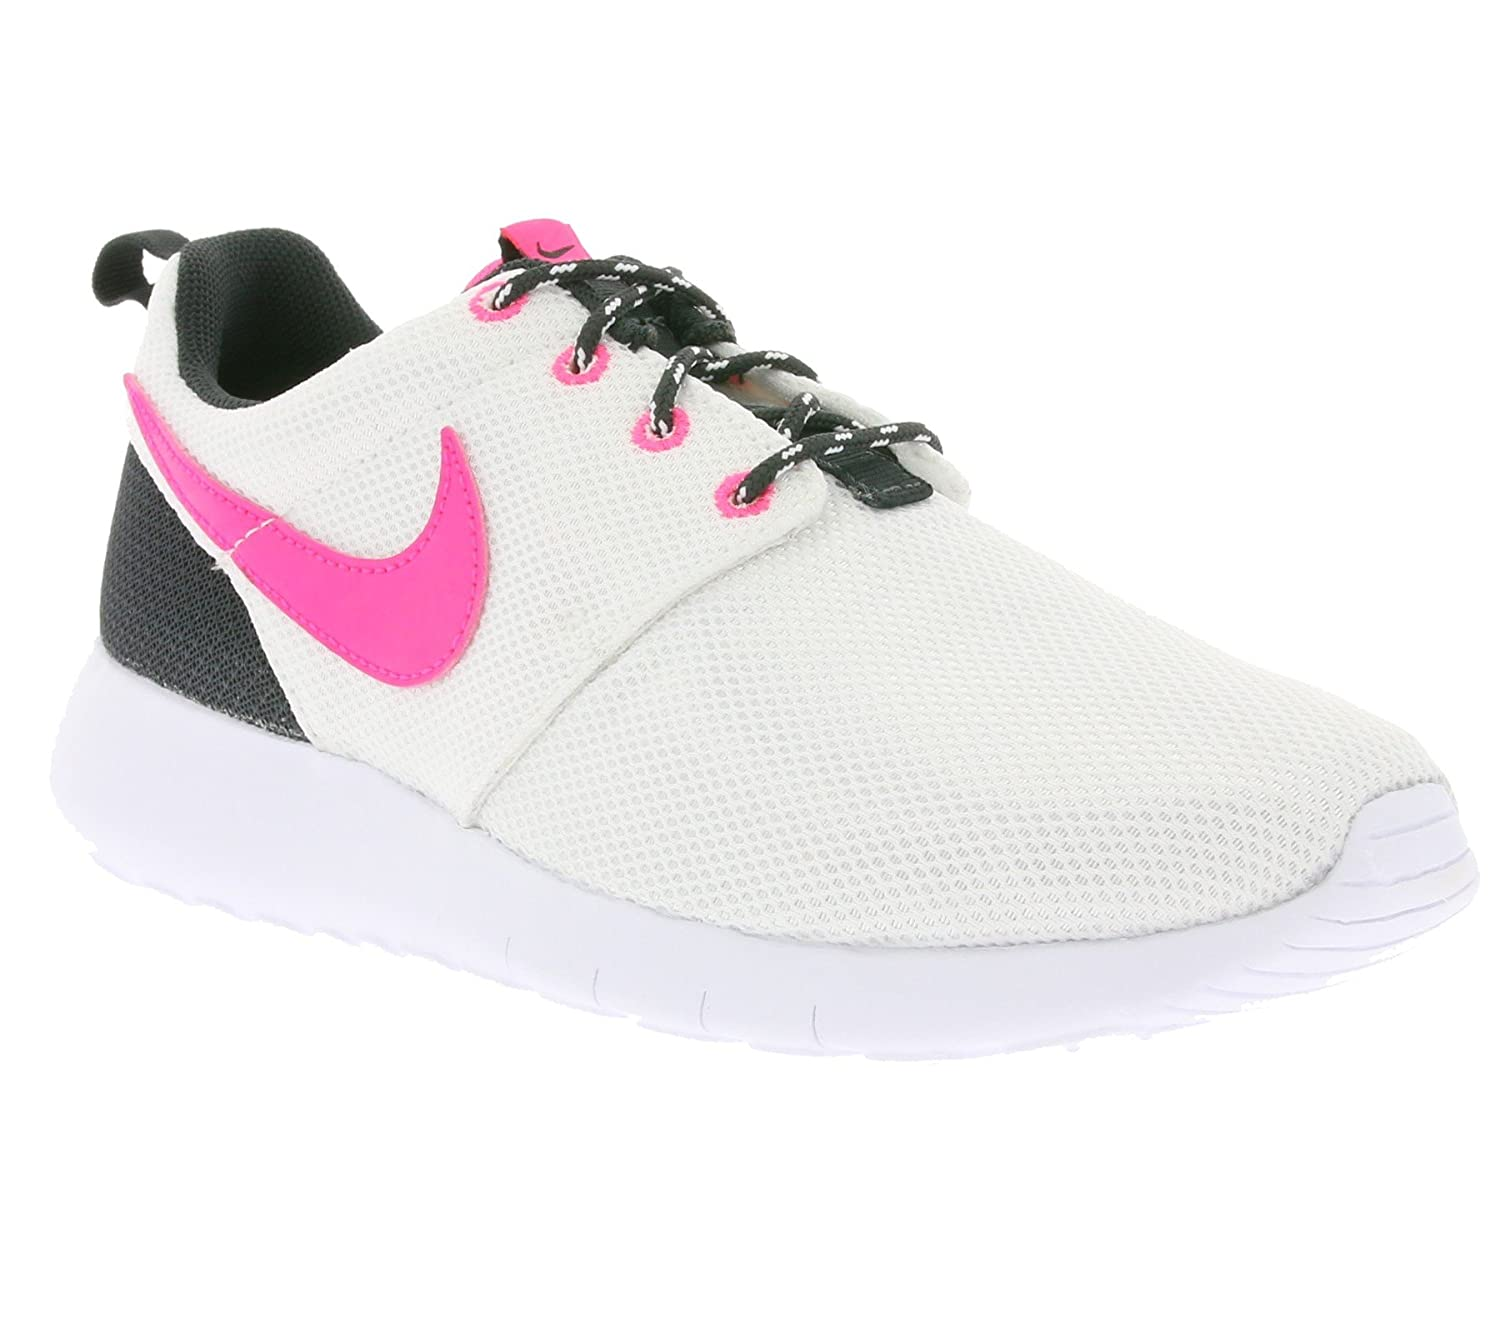 White Hyper Pink Anthracite 104 4.5 M US Nike Men's Rosherun Print Grey White 655206001